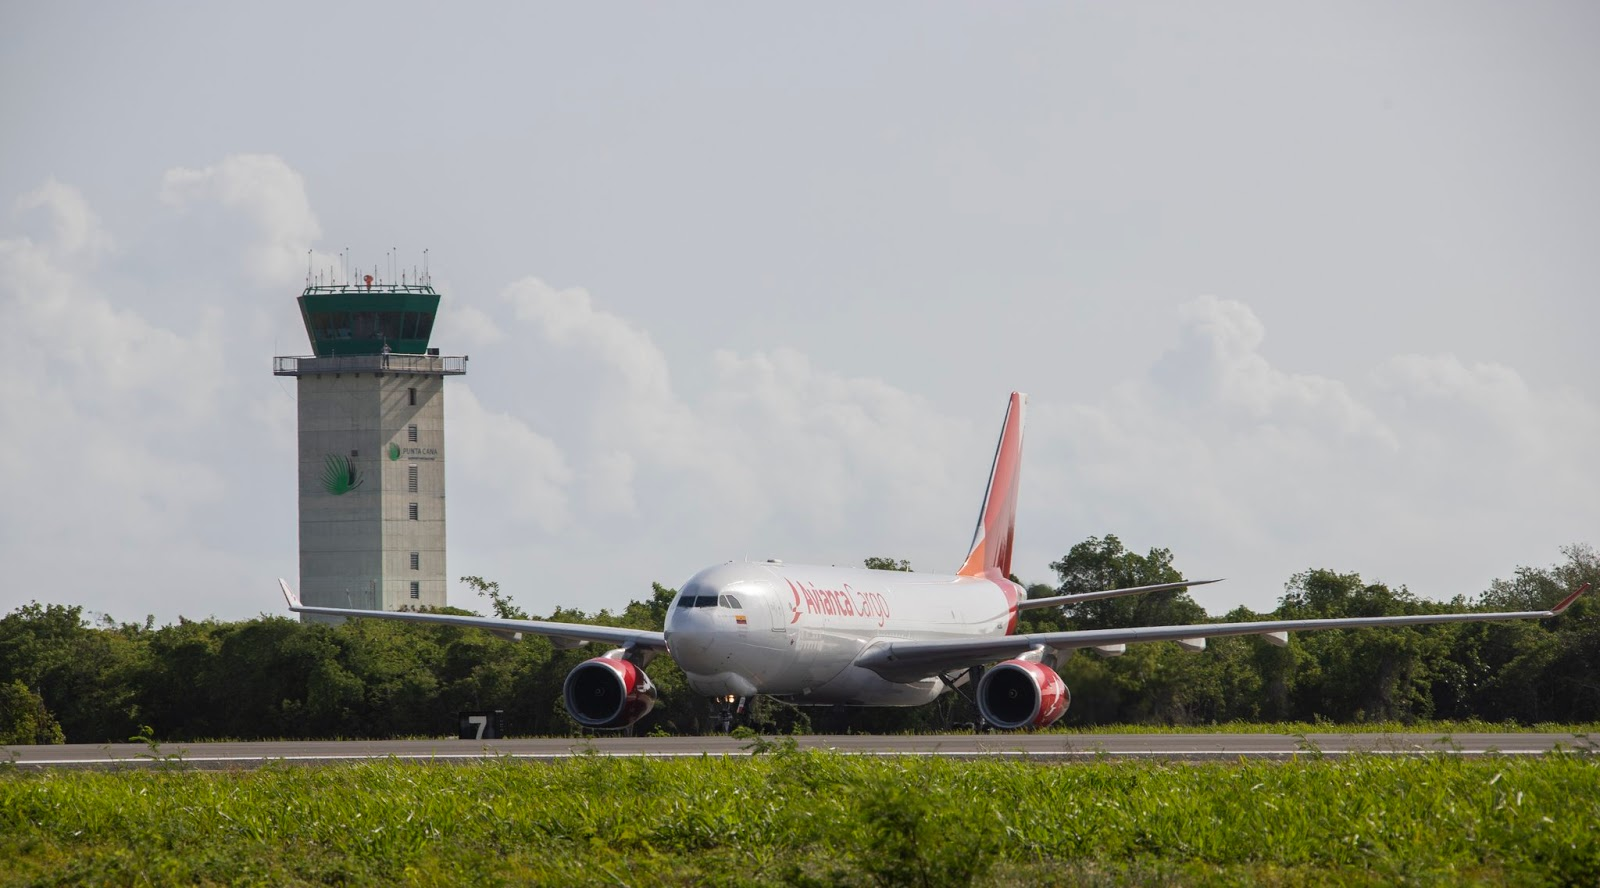 World's Second Oldest Airline, Avianca Files For Bankruptcy In The US